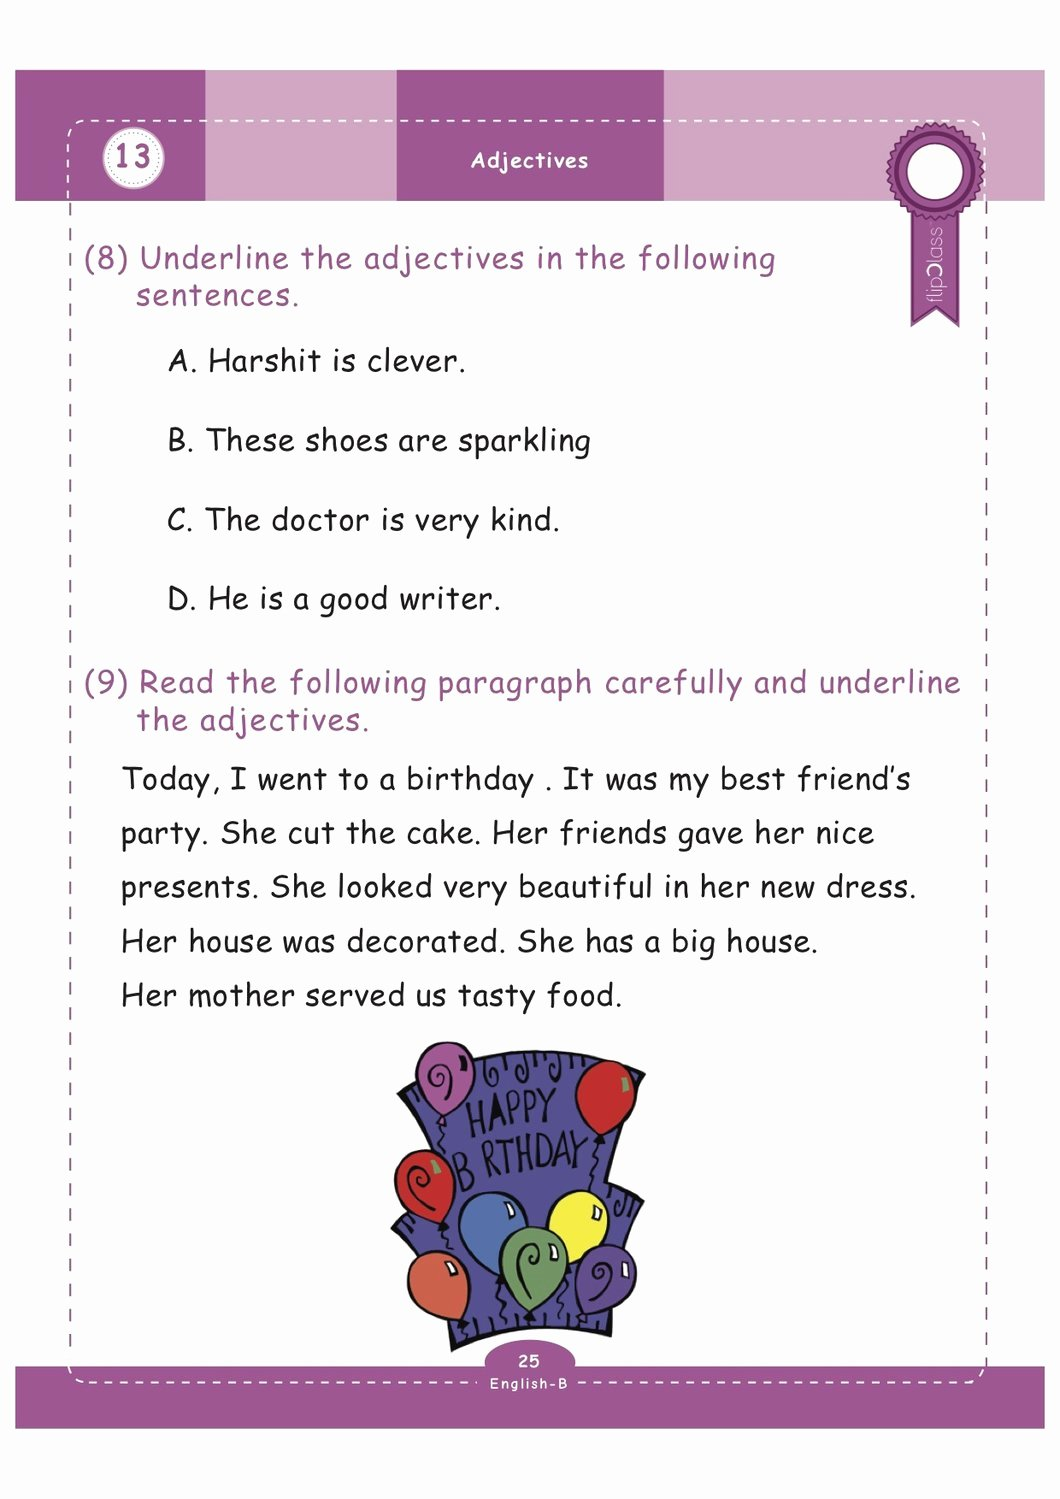 Science Worksheet for 1st Grade Beautiful Geniuskids Worksheets for Class 1 1st Grade